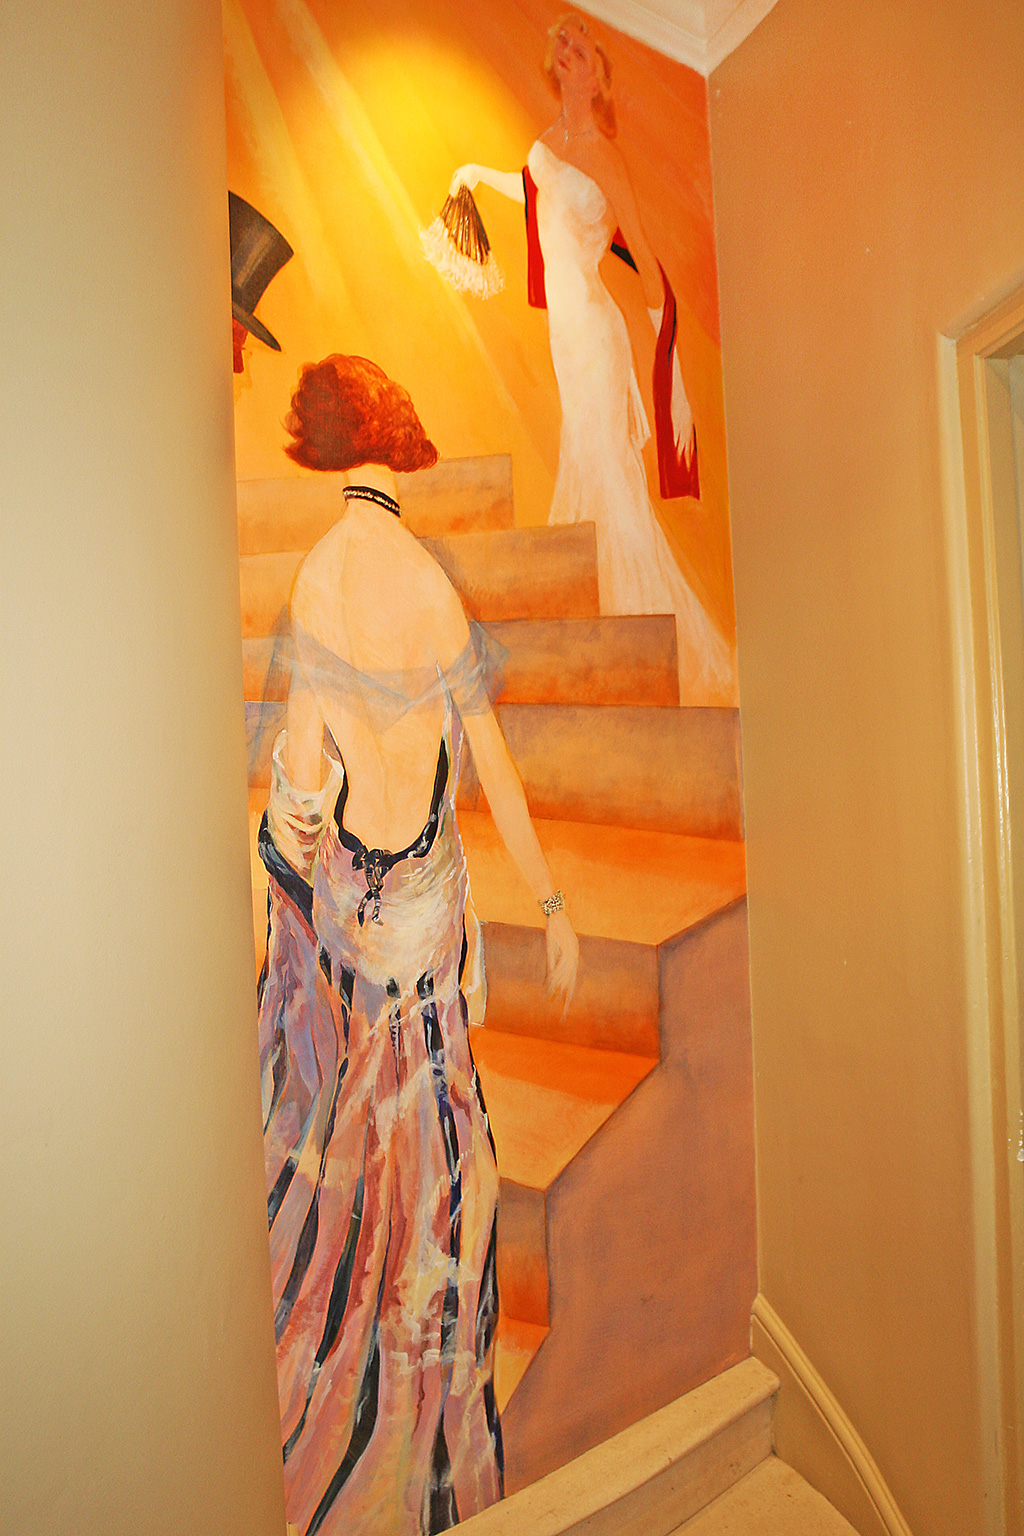 Women on the staircase in situ.